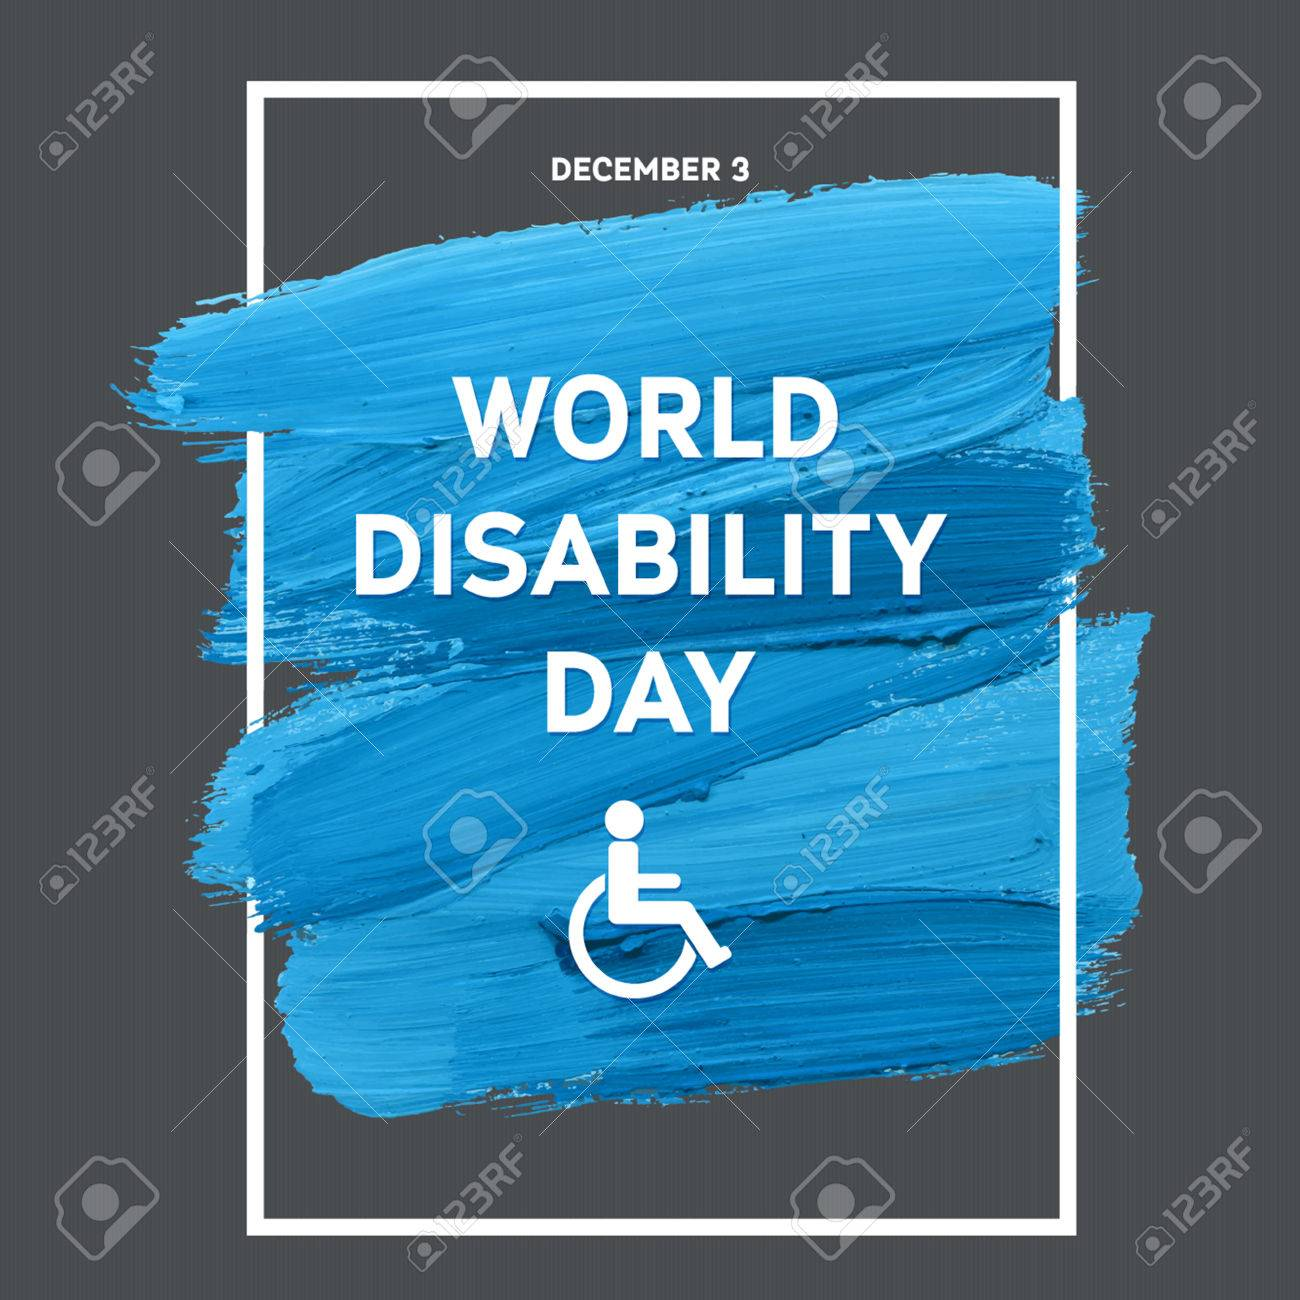 World Disability Day Typography Watercolor Brush Stroke Design